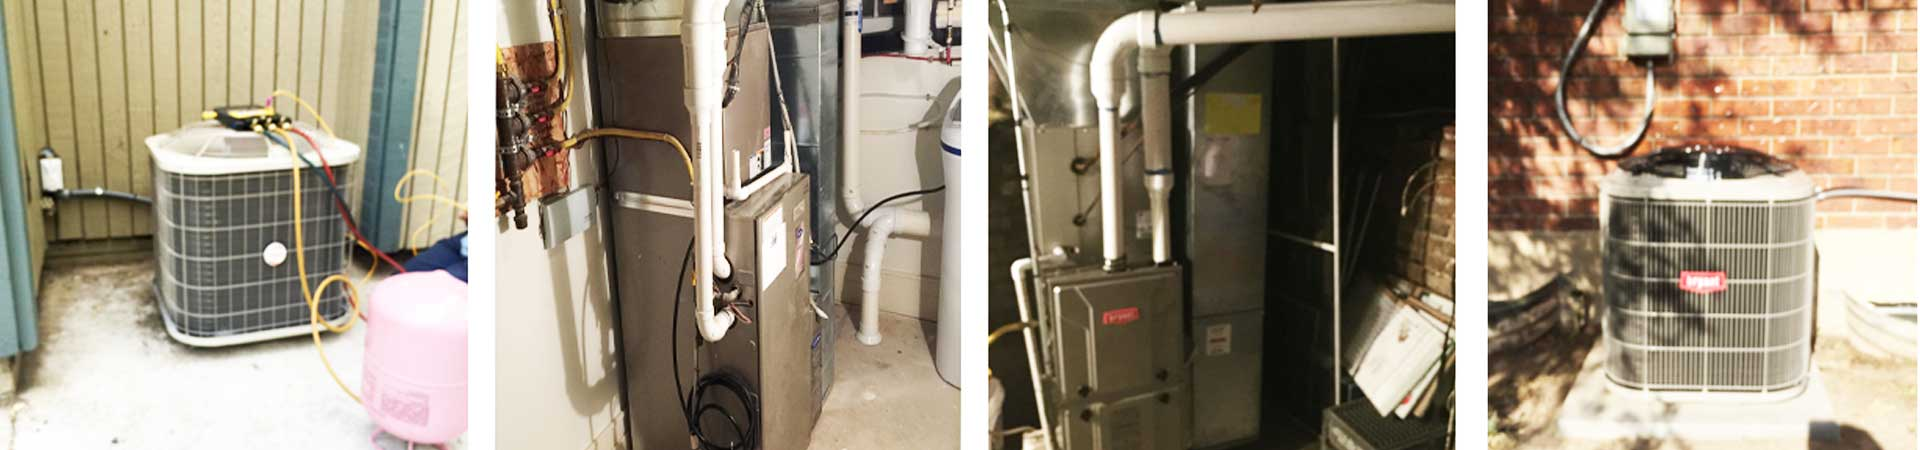 Heating Systems Melbourne Slider